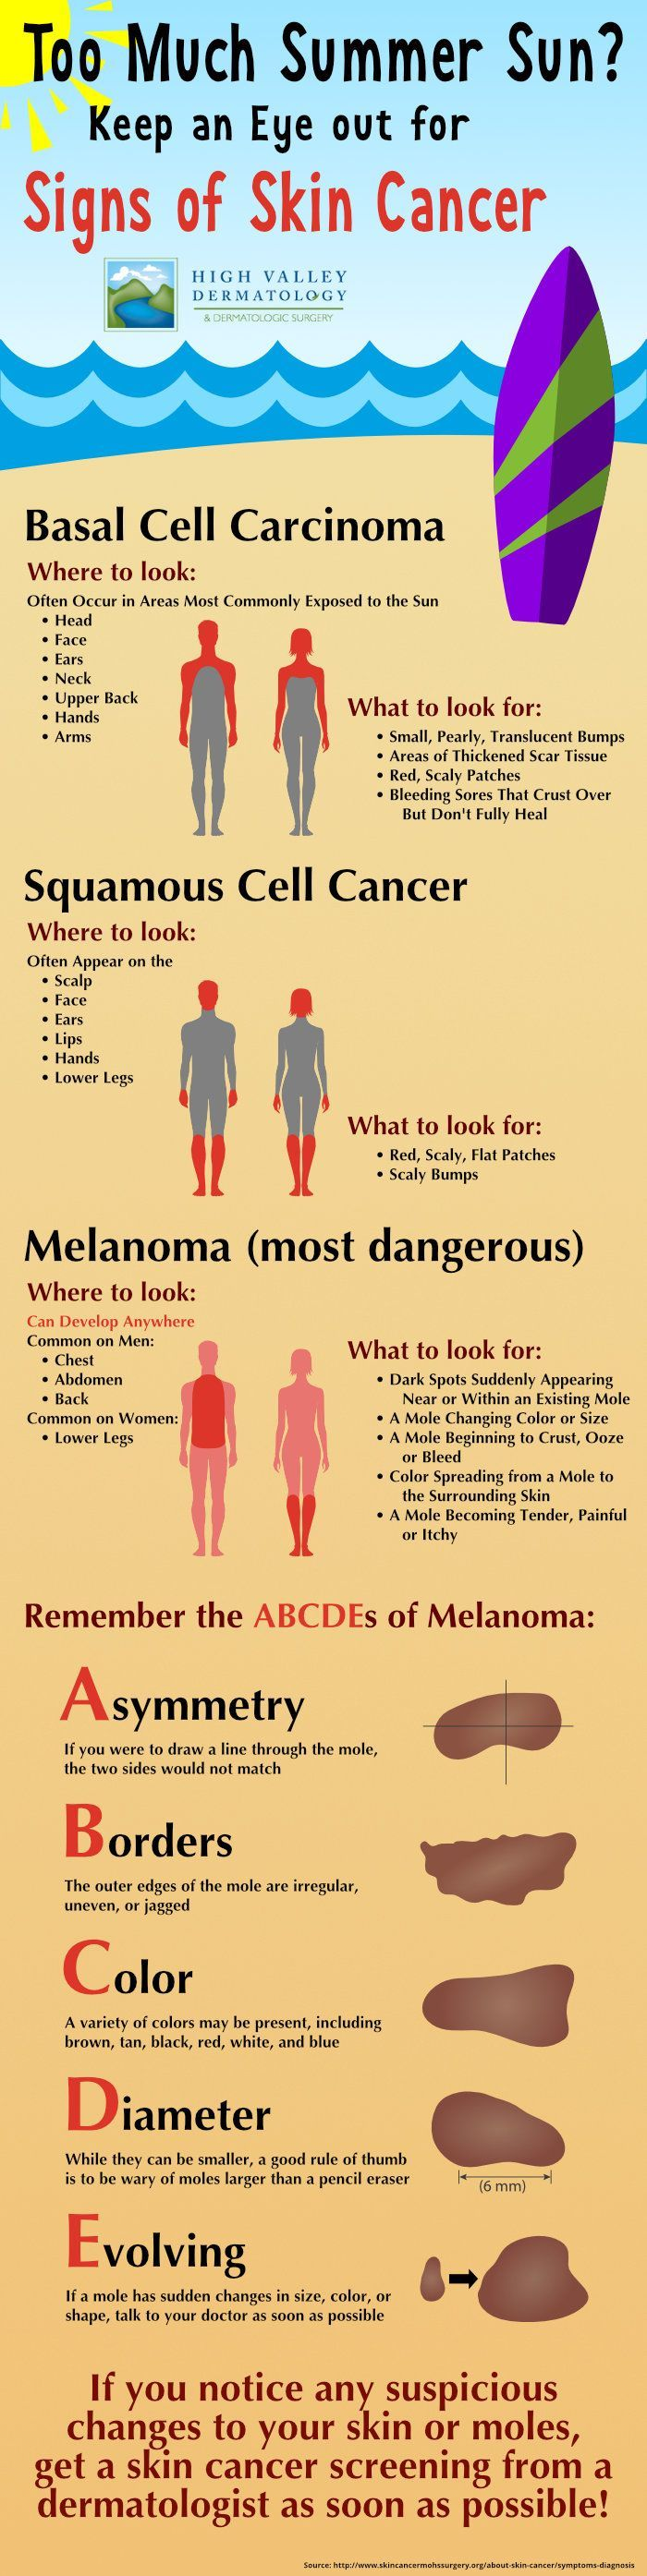 Signs of Skin Cancer / Skin Cancer Symptoms — High Valley Dermatology Infographic: